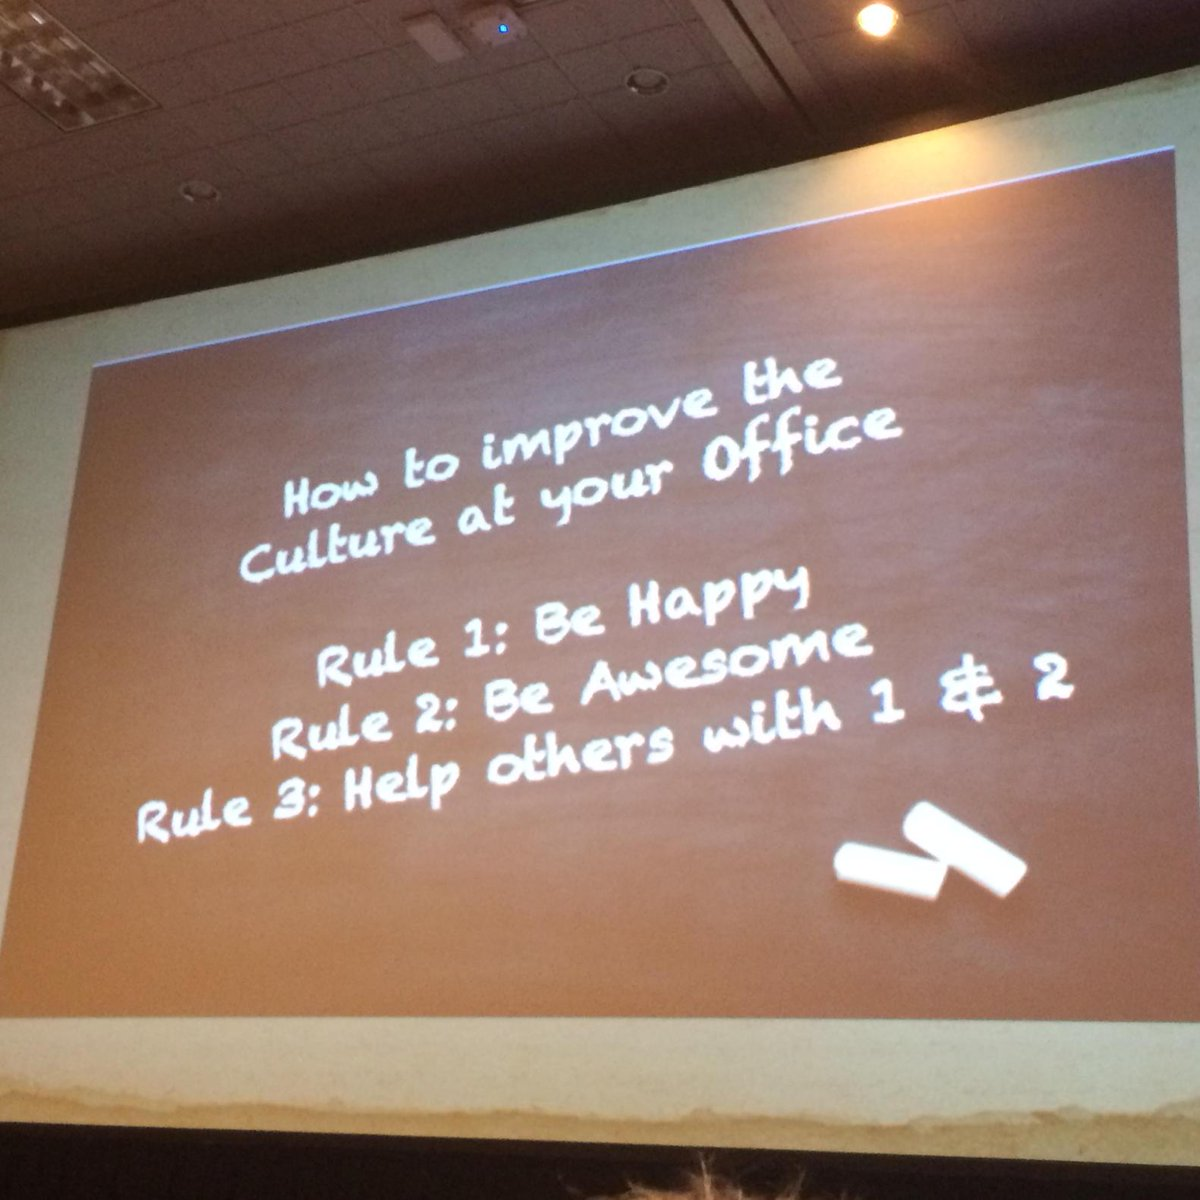 New rules for work: (1) Be Happy (2) Be Awesome (3) Help others with rules 1 & 2. @sbrownehr #shrm15 http://t.co/O0OzAHC24E